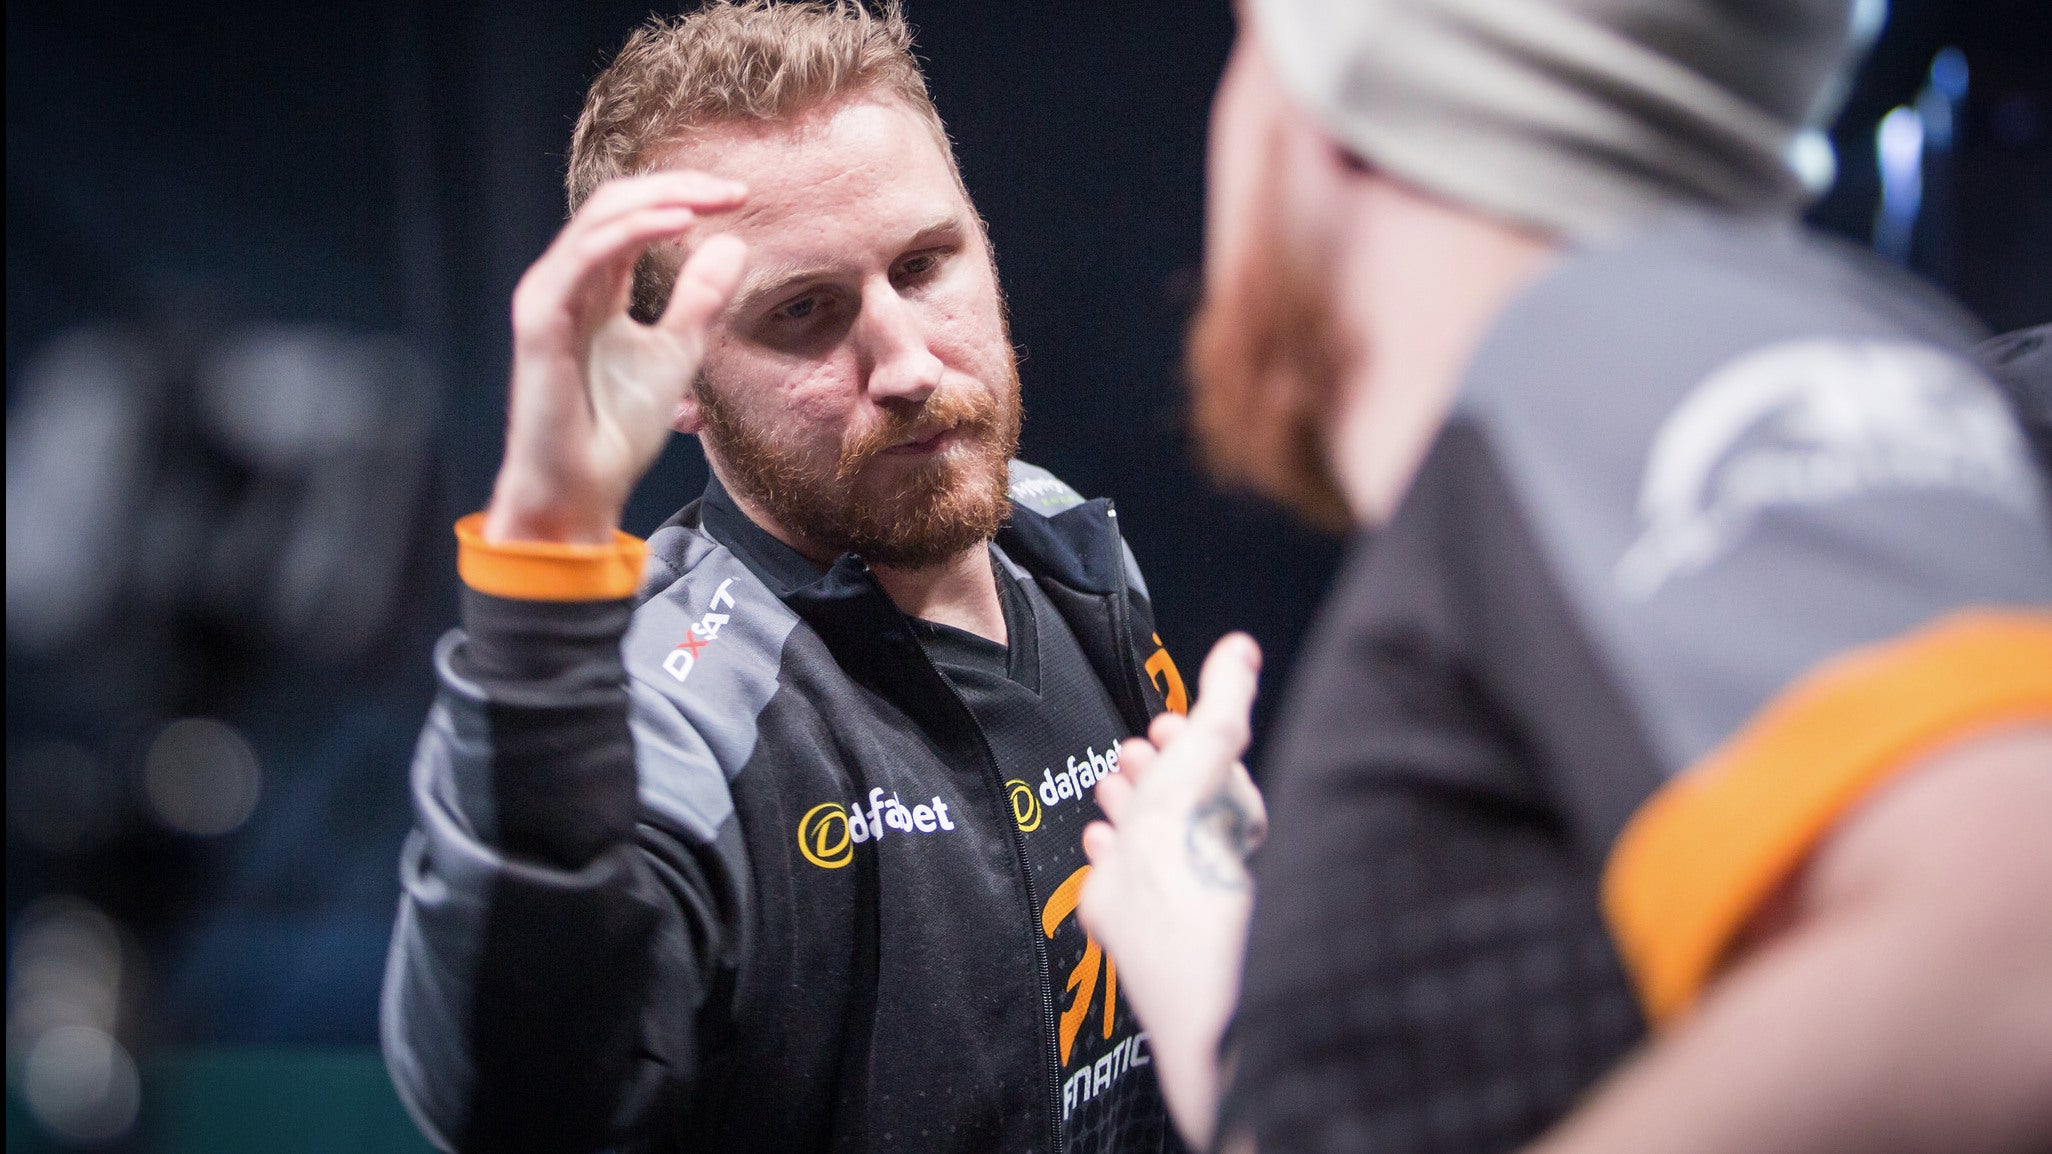 Fnatic Win The IEM Katowice Counter-Strike Championship Using Magic Bullets